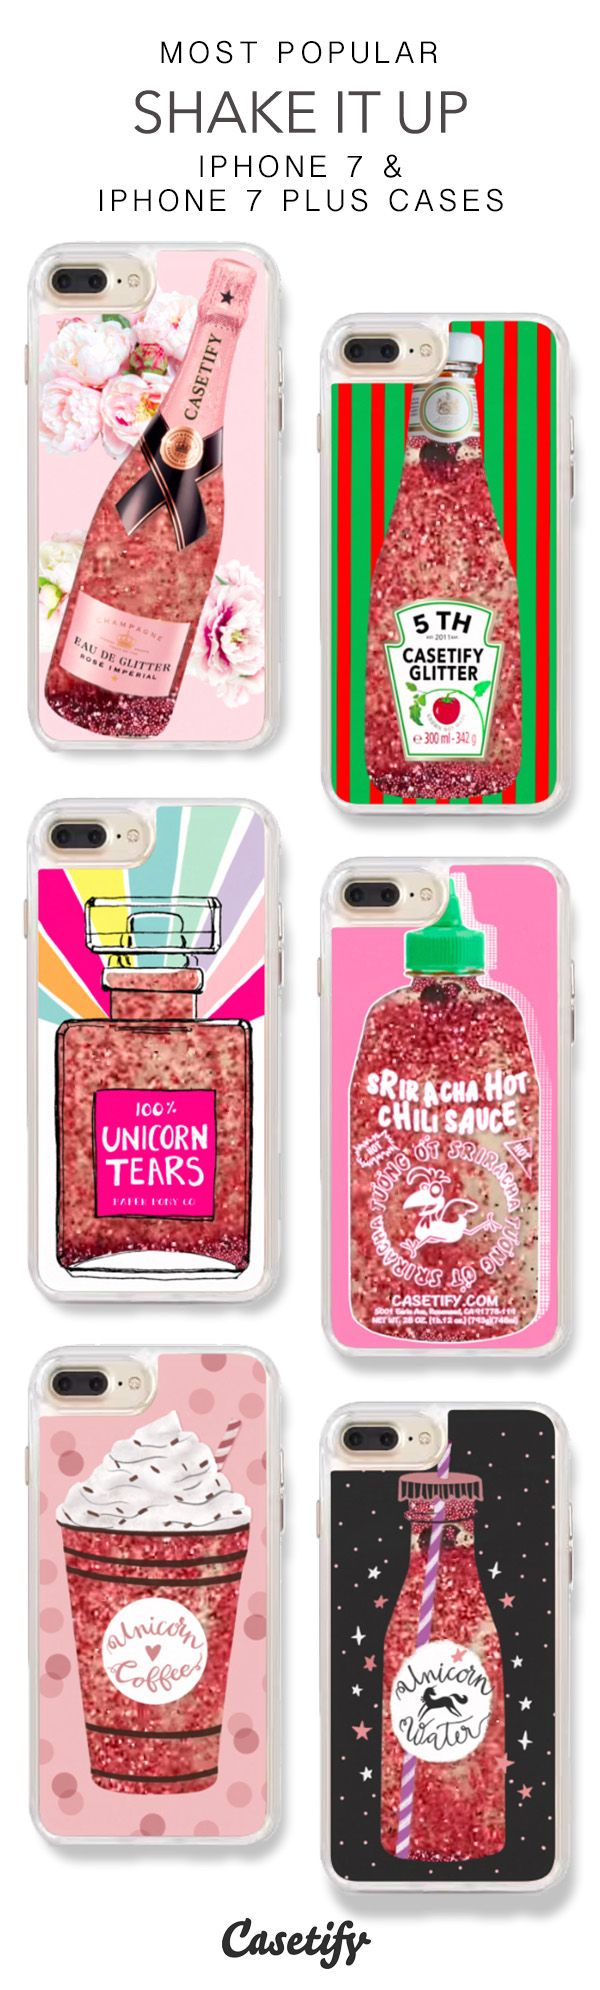 Most Popular Shake it Up iPhone 7 Cases & iPhone 7 Plus Cases. More Protective Liquid Glitter Bottles iPhone case here > https://www.casetify.com/en_US/collections/iphone-7-glitter-cases#/?vc=TMBCBVtMAW